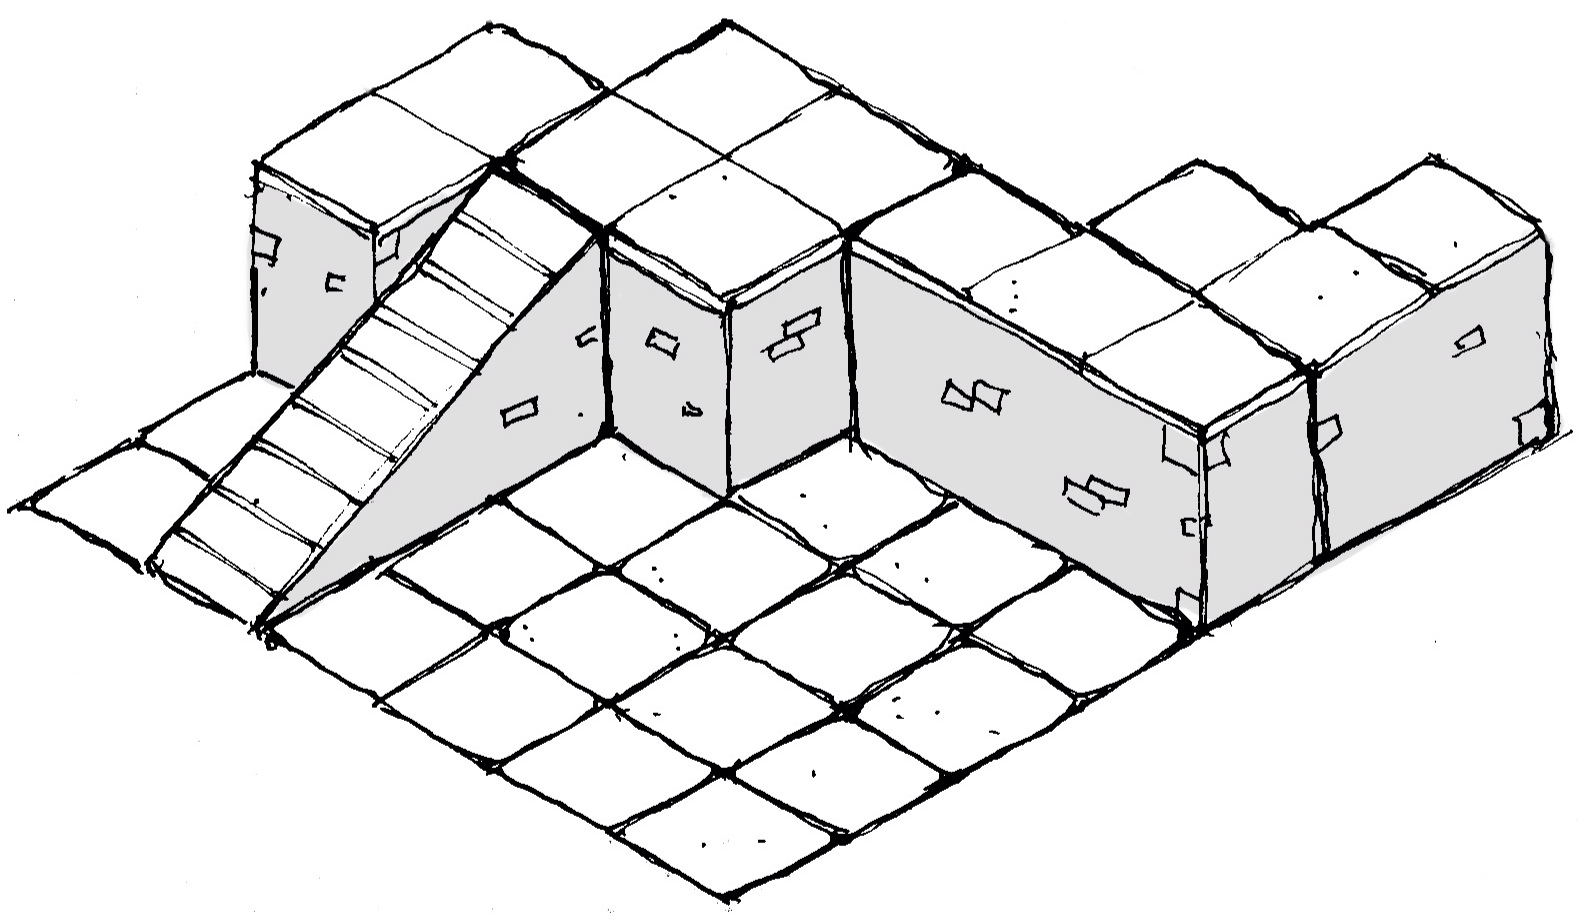 Inked Adventures » Blocks, photos and diagrams